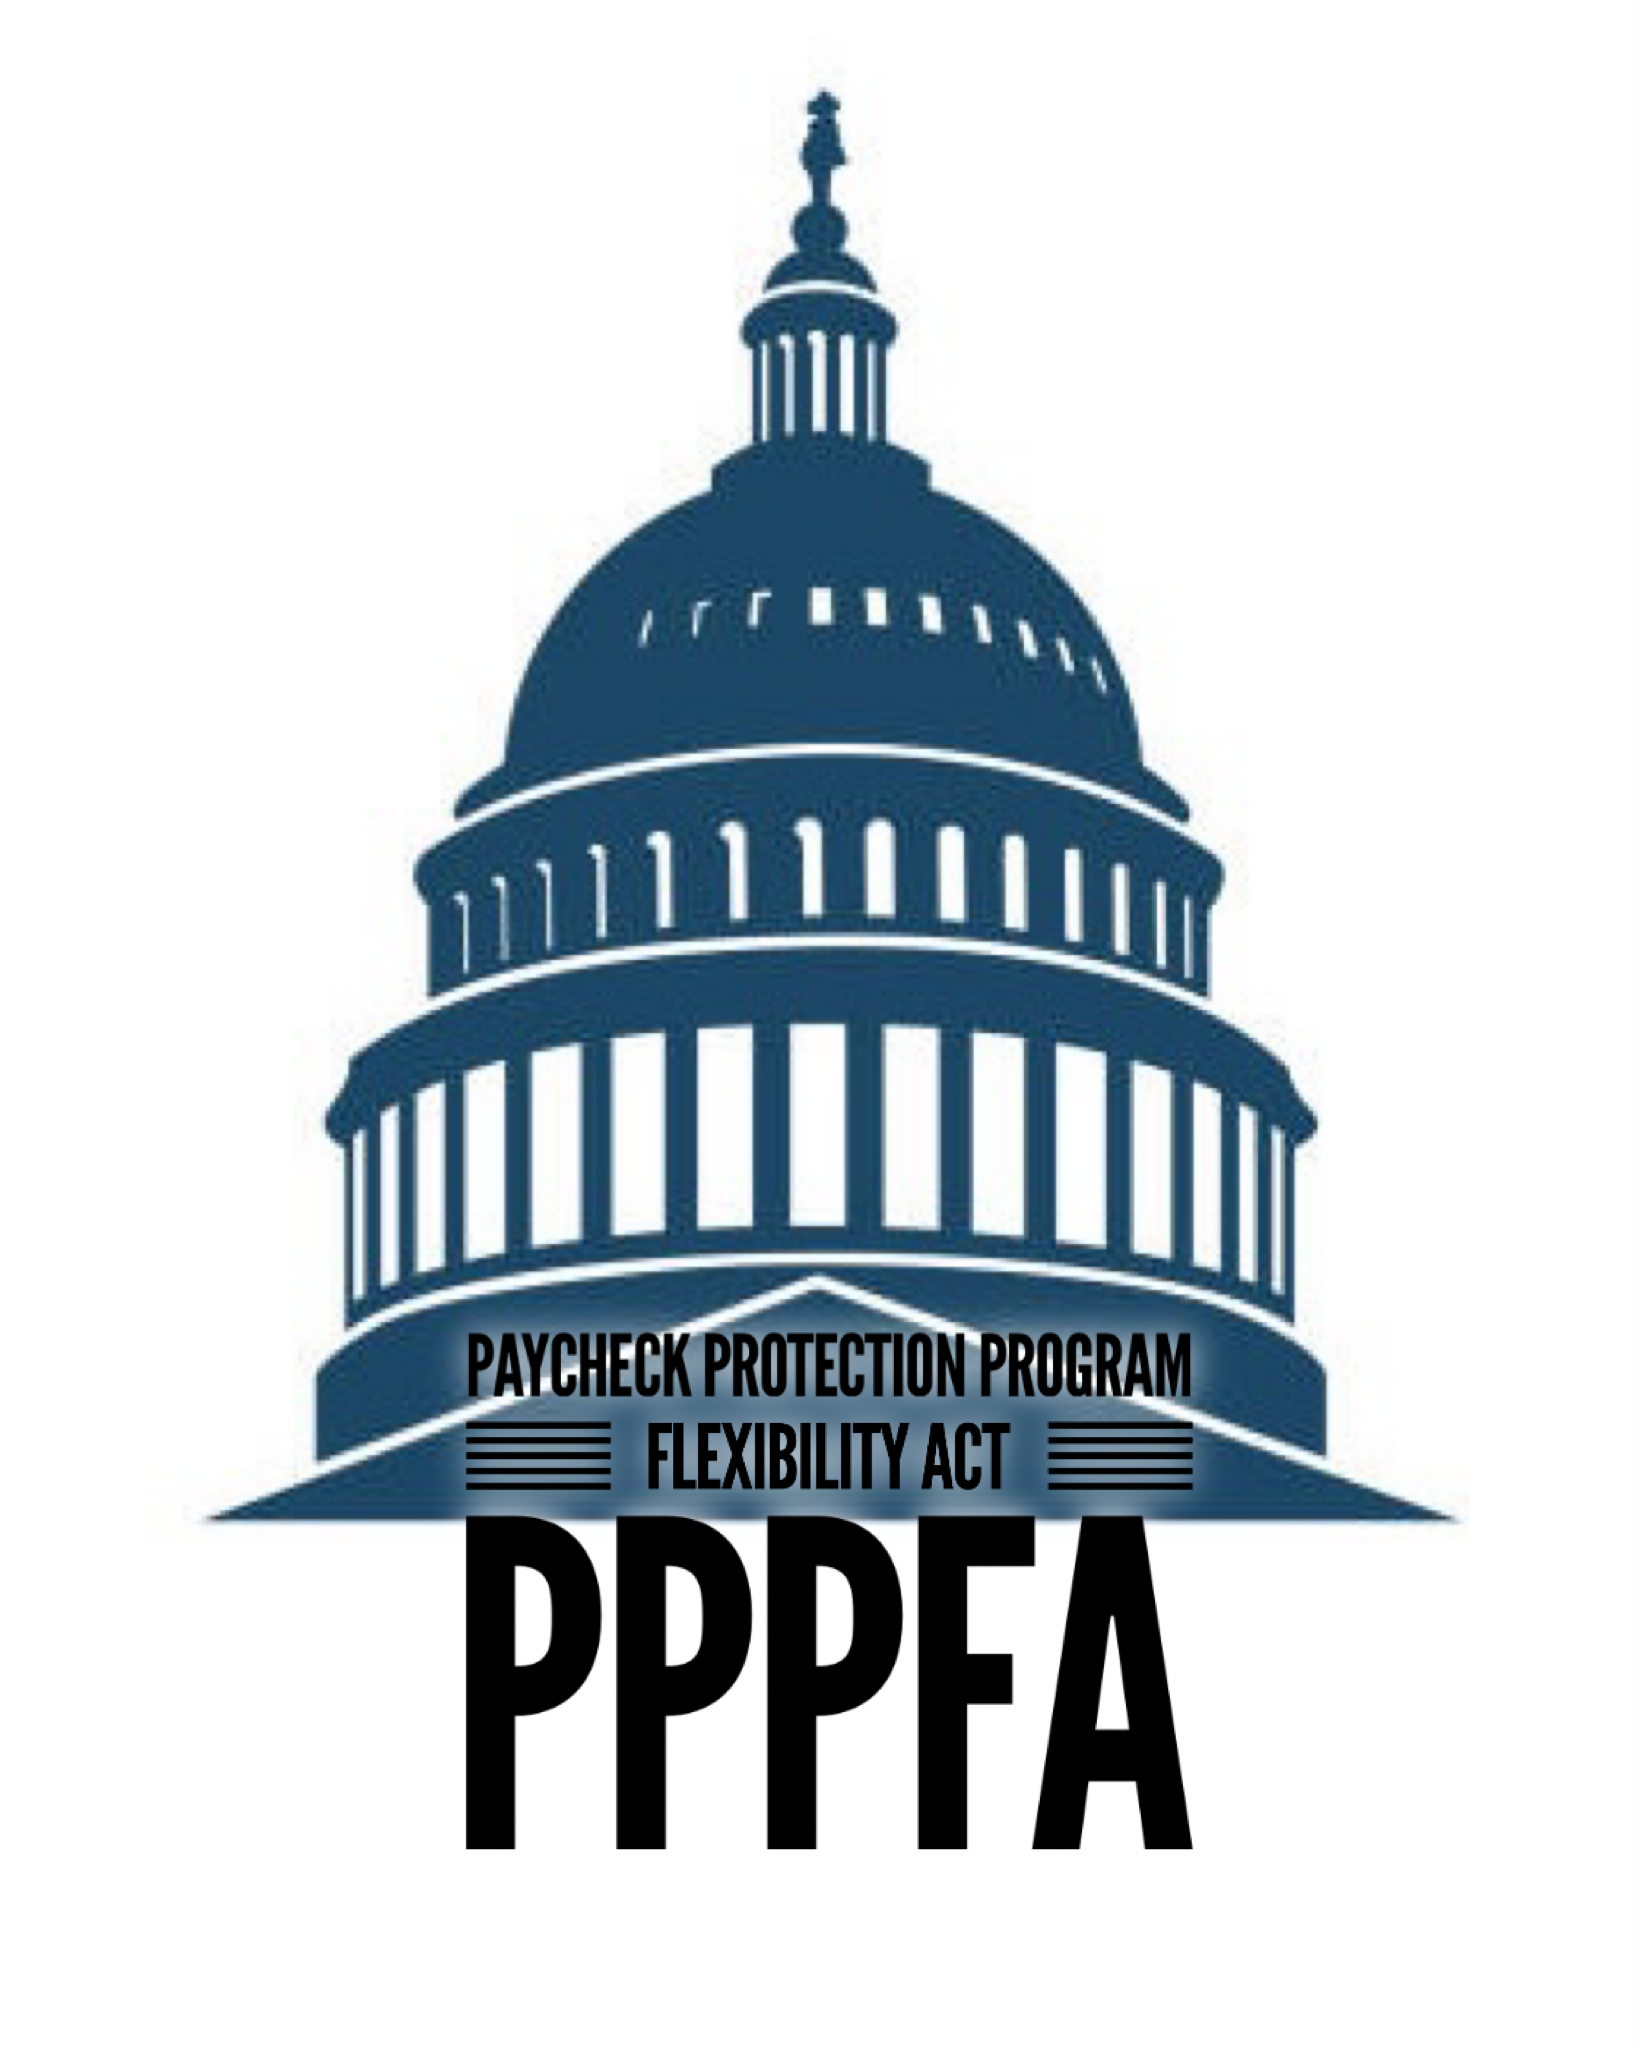 The Paycheck Protection Program Flexibility Act (PPPFA)